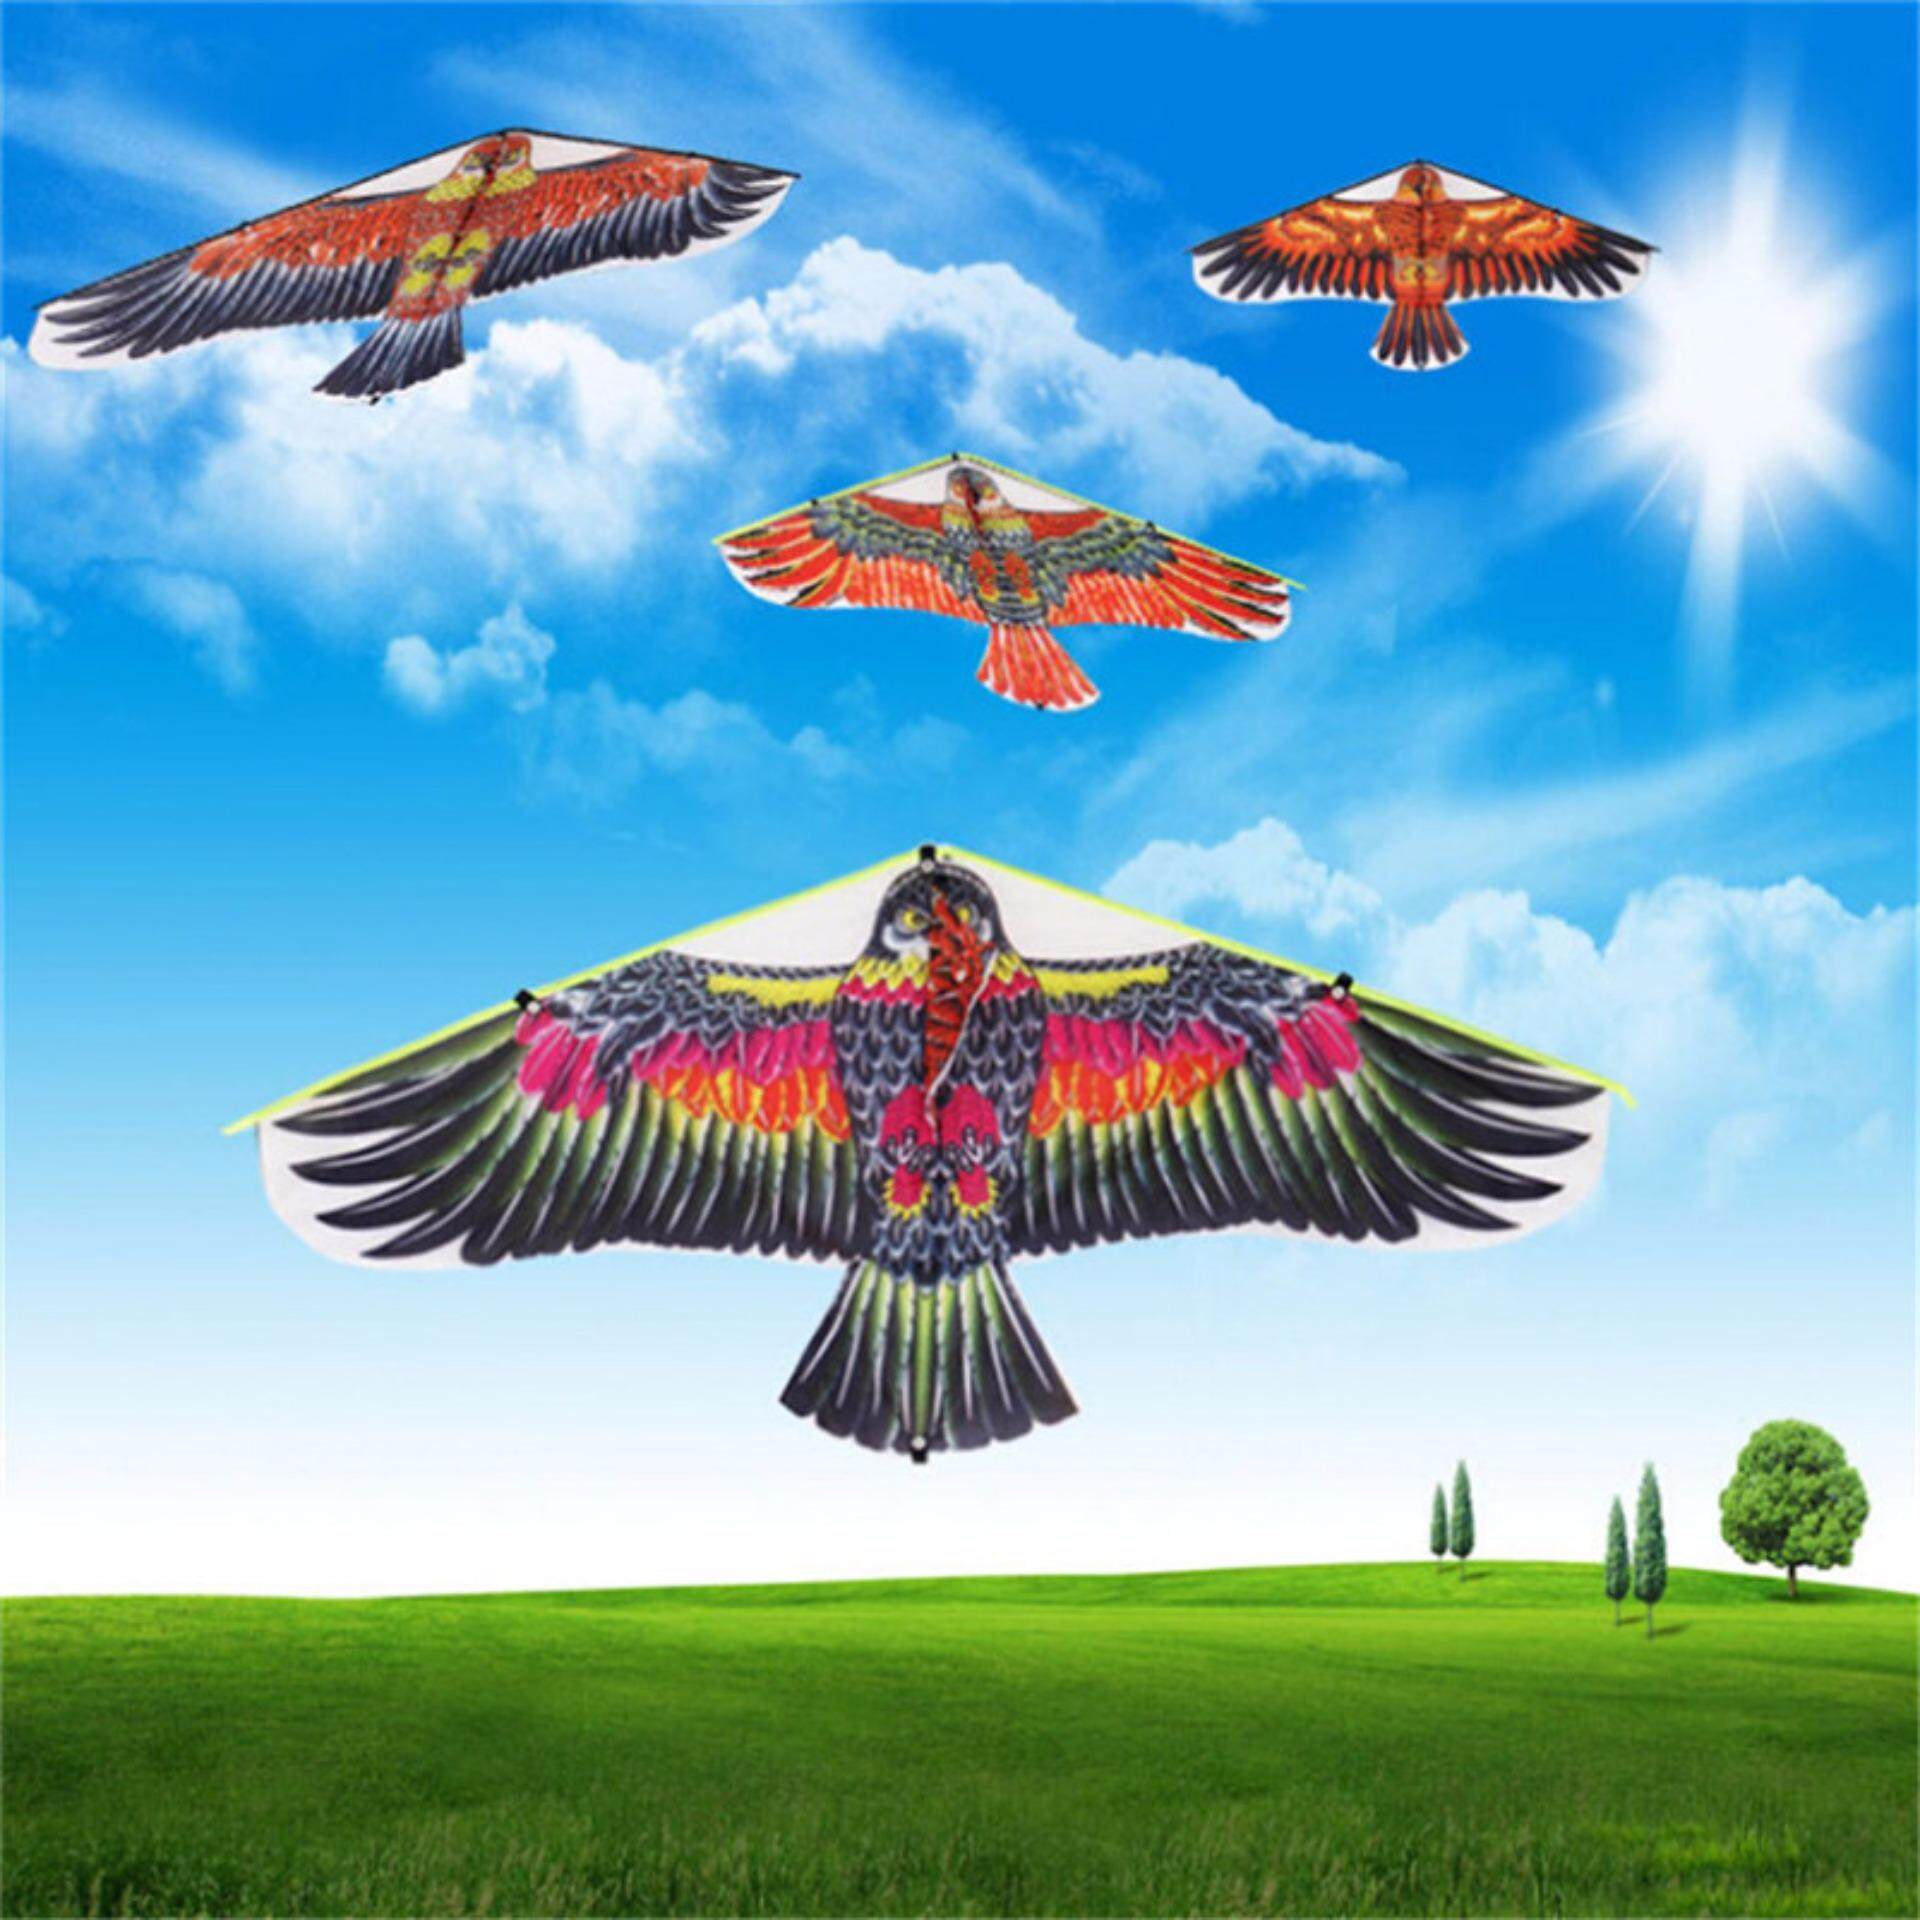 Mecola Flat Eagle Bird Kite Children Flying Bird Kites Outdoor Garden Toys image